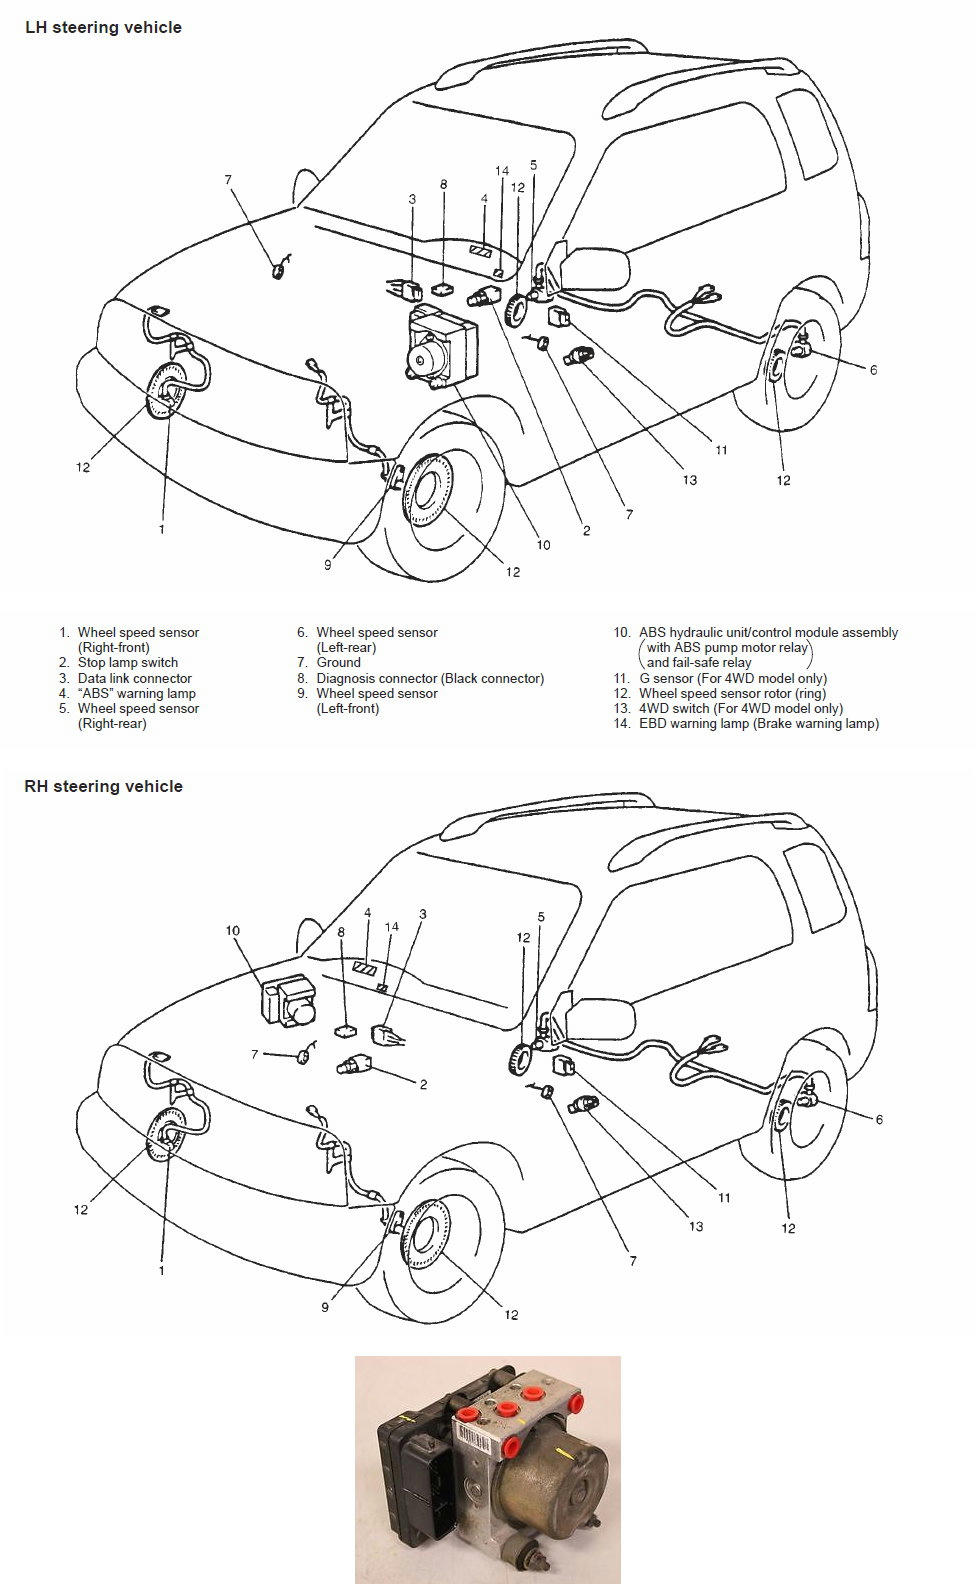 Service manual [Repair Anti Lock Braking 2005 Suzuki Grand